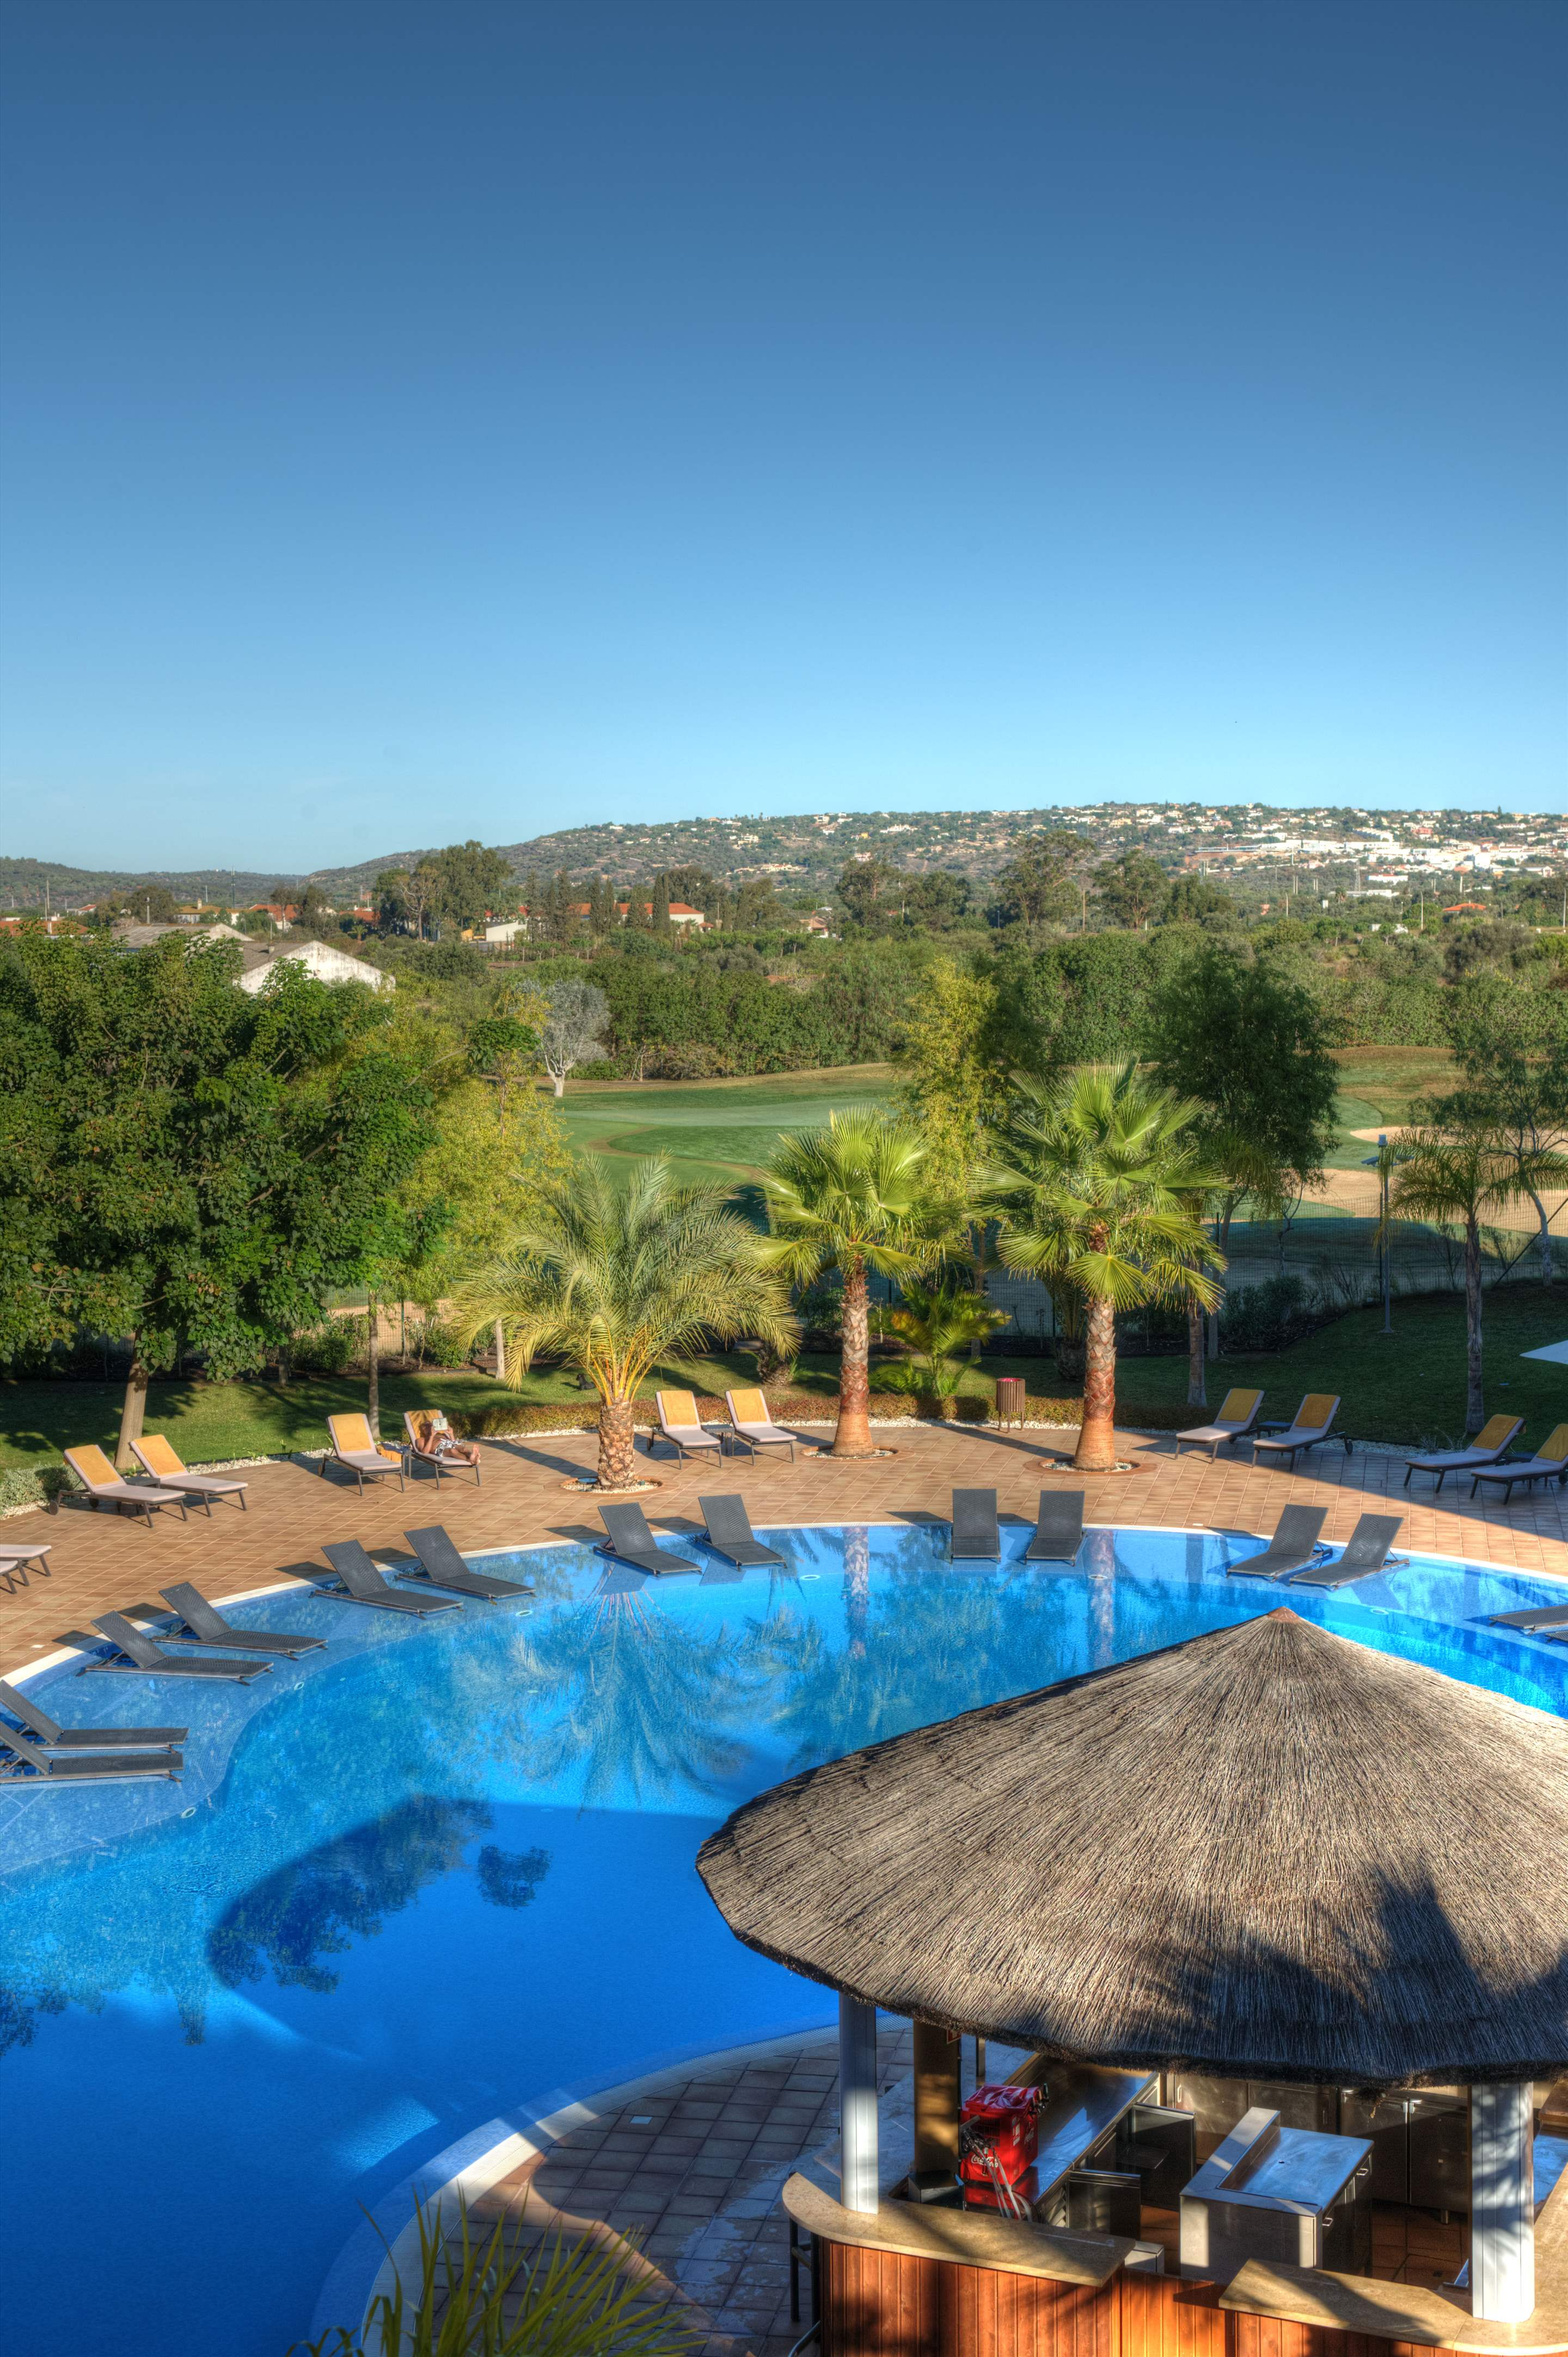 The Residences at Victoria by TIVOLI 2 Bed Apt , Deluxe,Golf or Pool View, 2 bedroom apartment in The Residences at Victoria by TIVOLI, Algarve Photo #23